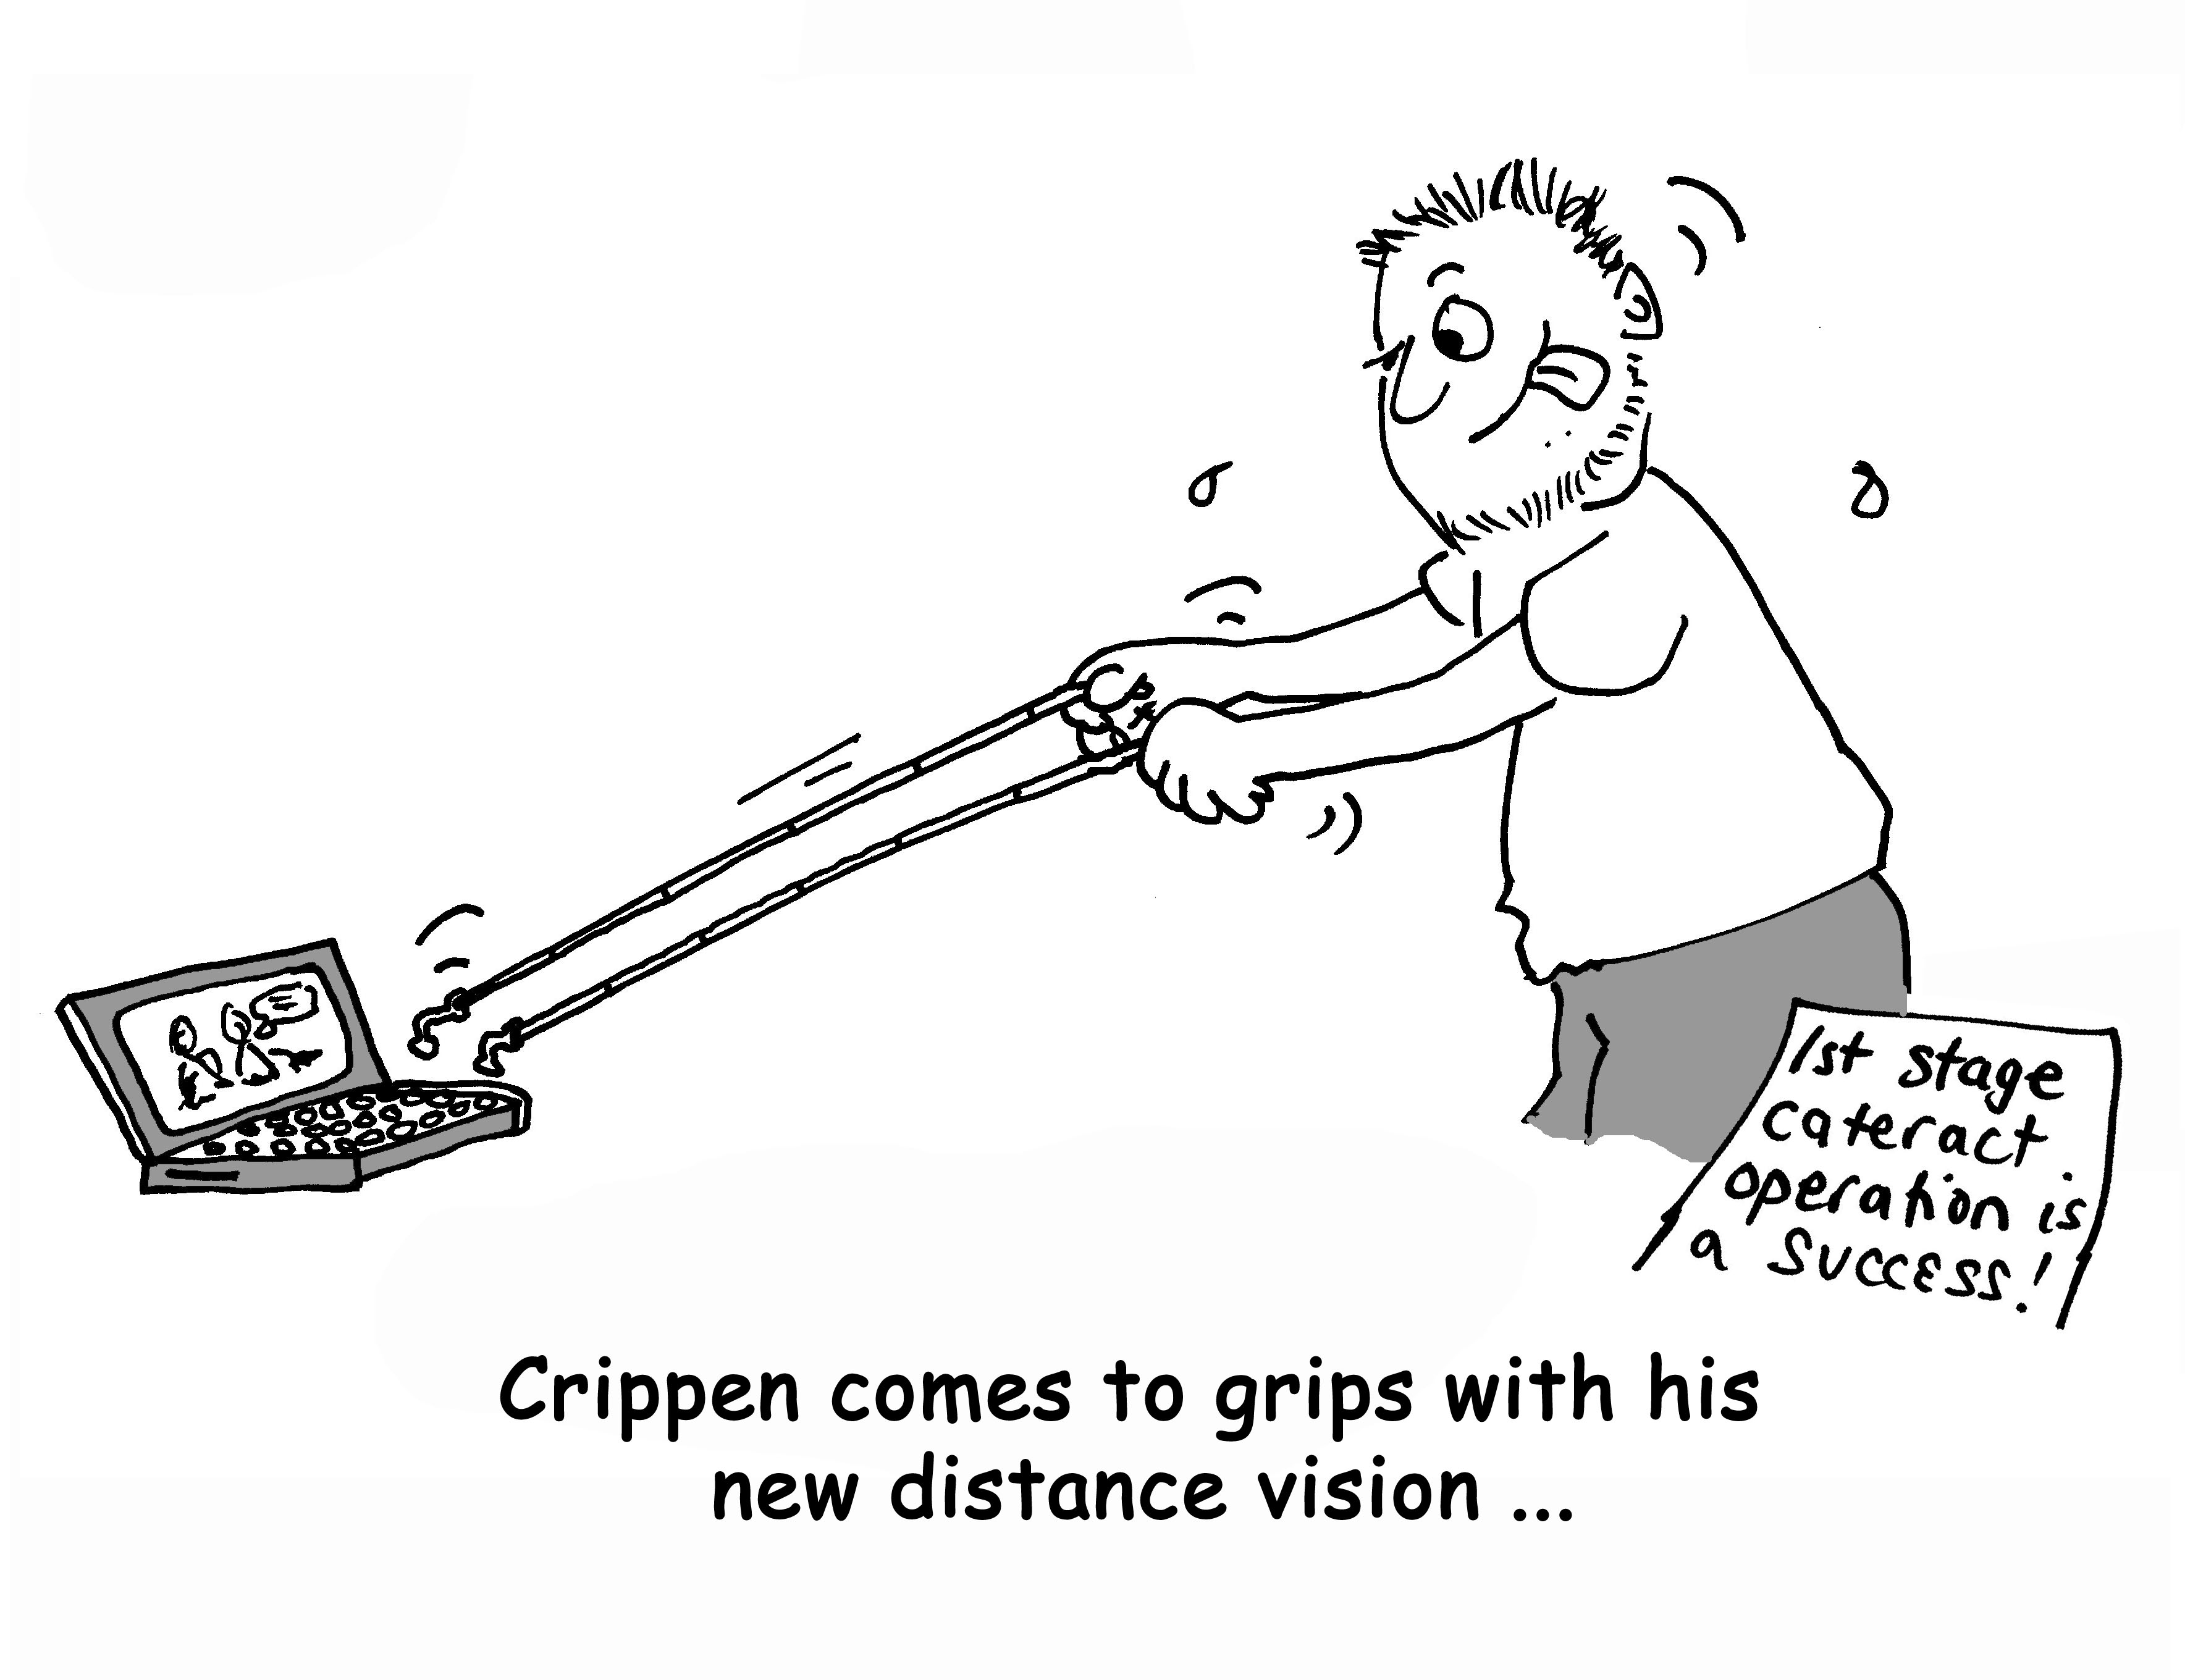 Crippen's cartoon about his current visual impairment